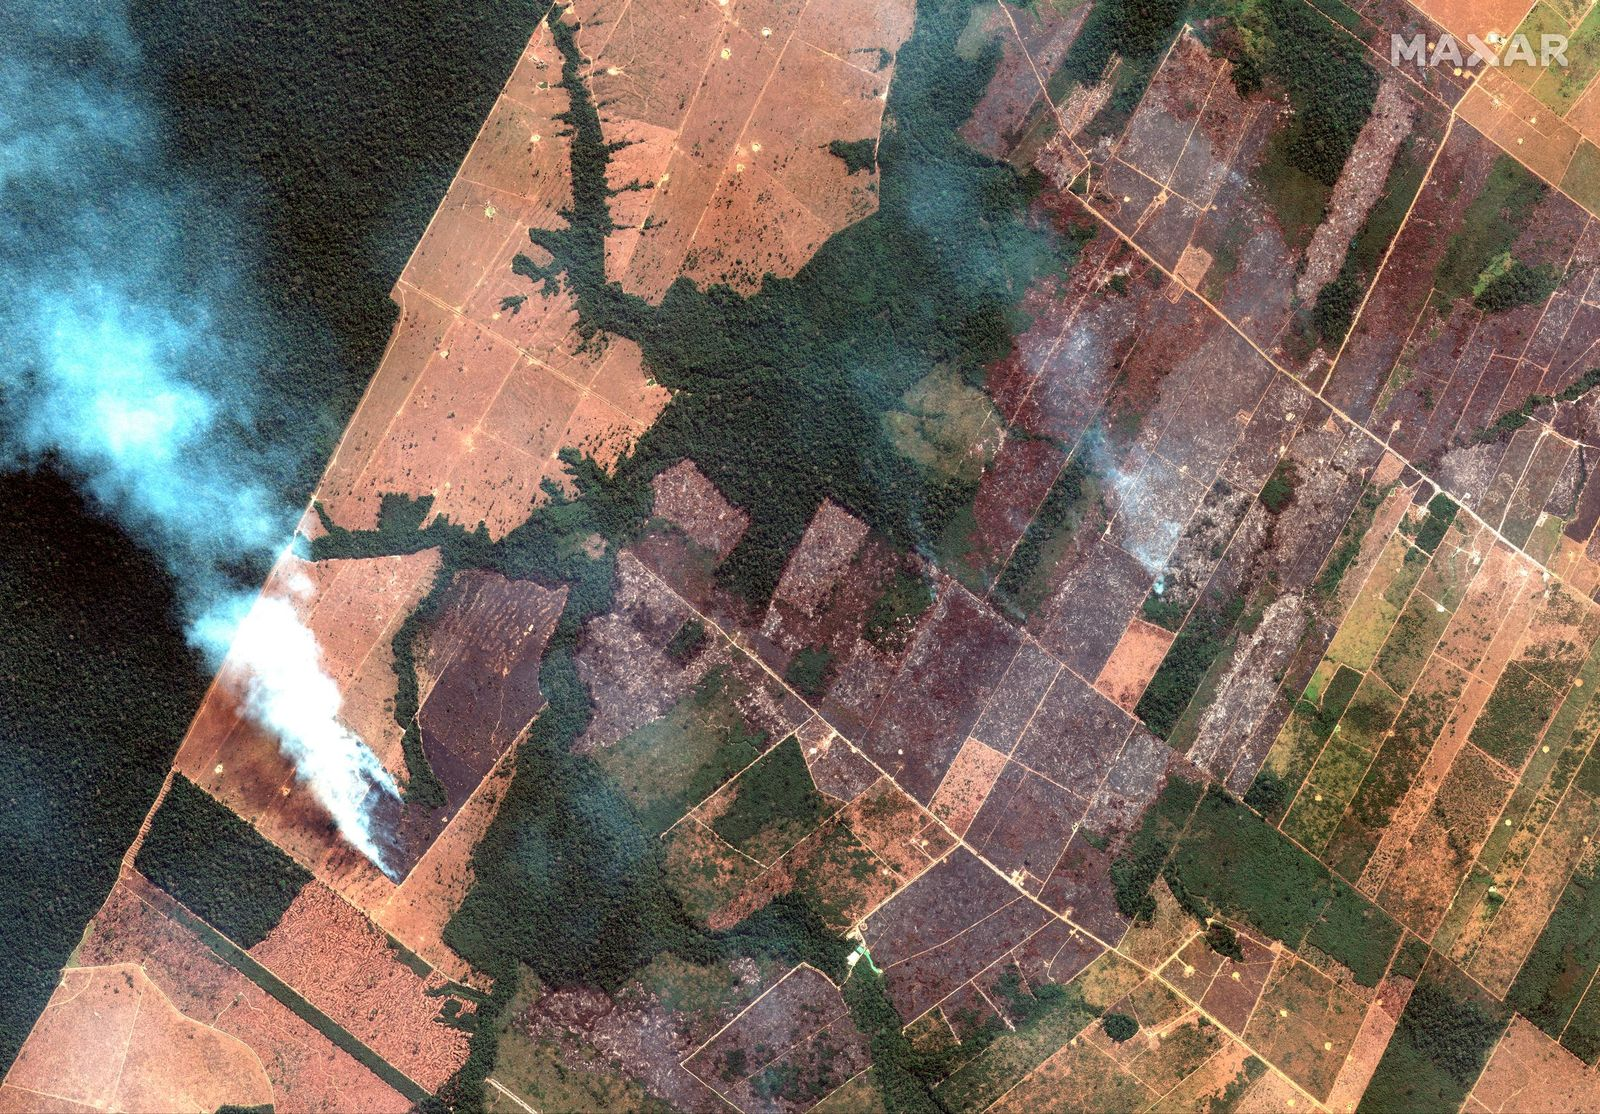 In this Aug 15, 2019 satellite image provided by Satellite image ©2019 Maxar Technologies, shows fires burning in the State of Rondonia, Brazil, in the upper Amazon River basin. (Satellite image ©2019 Maxar Technologies via AP)